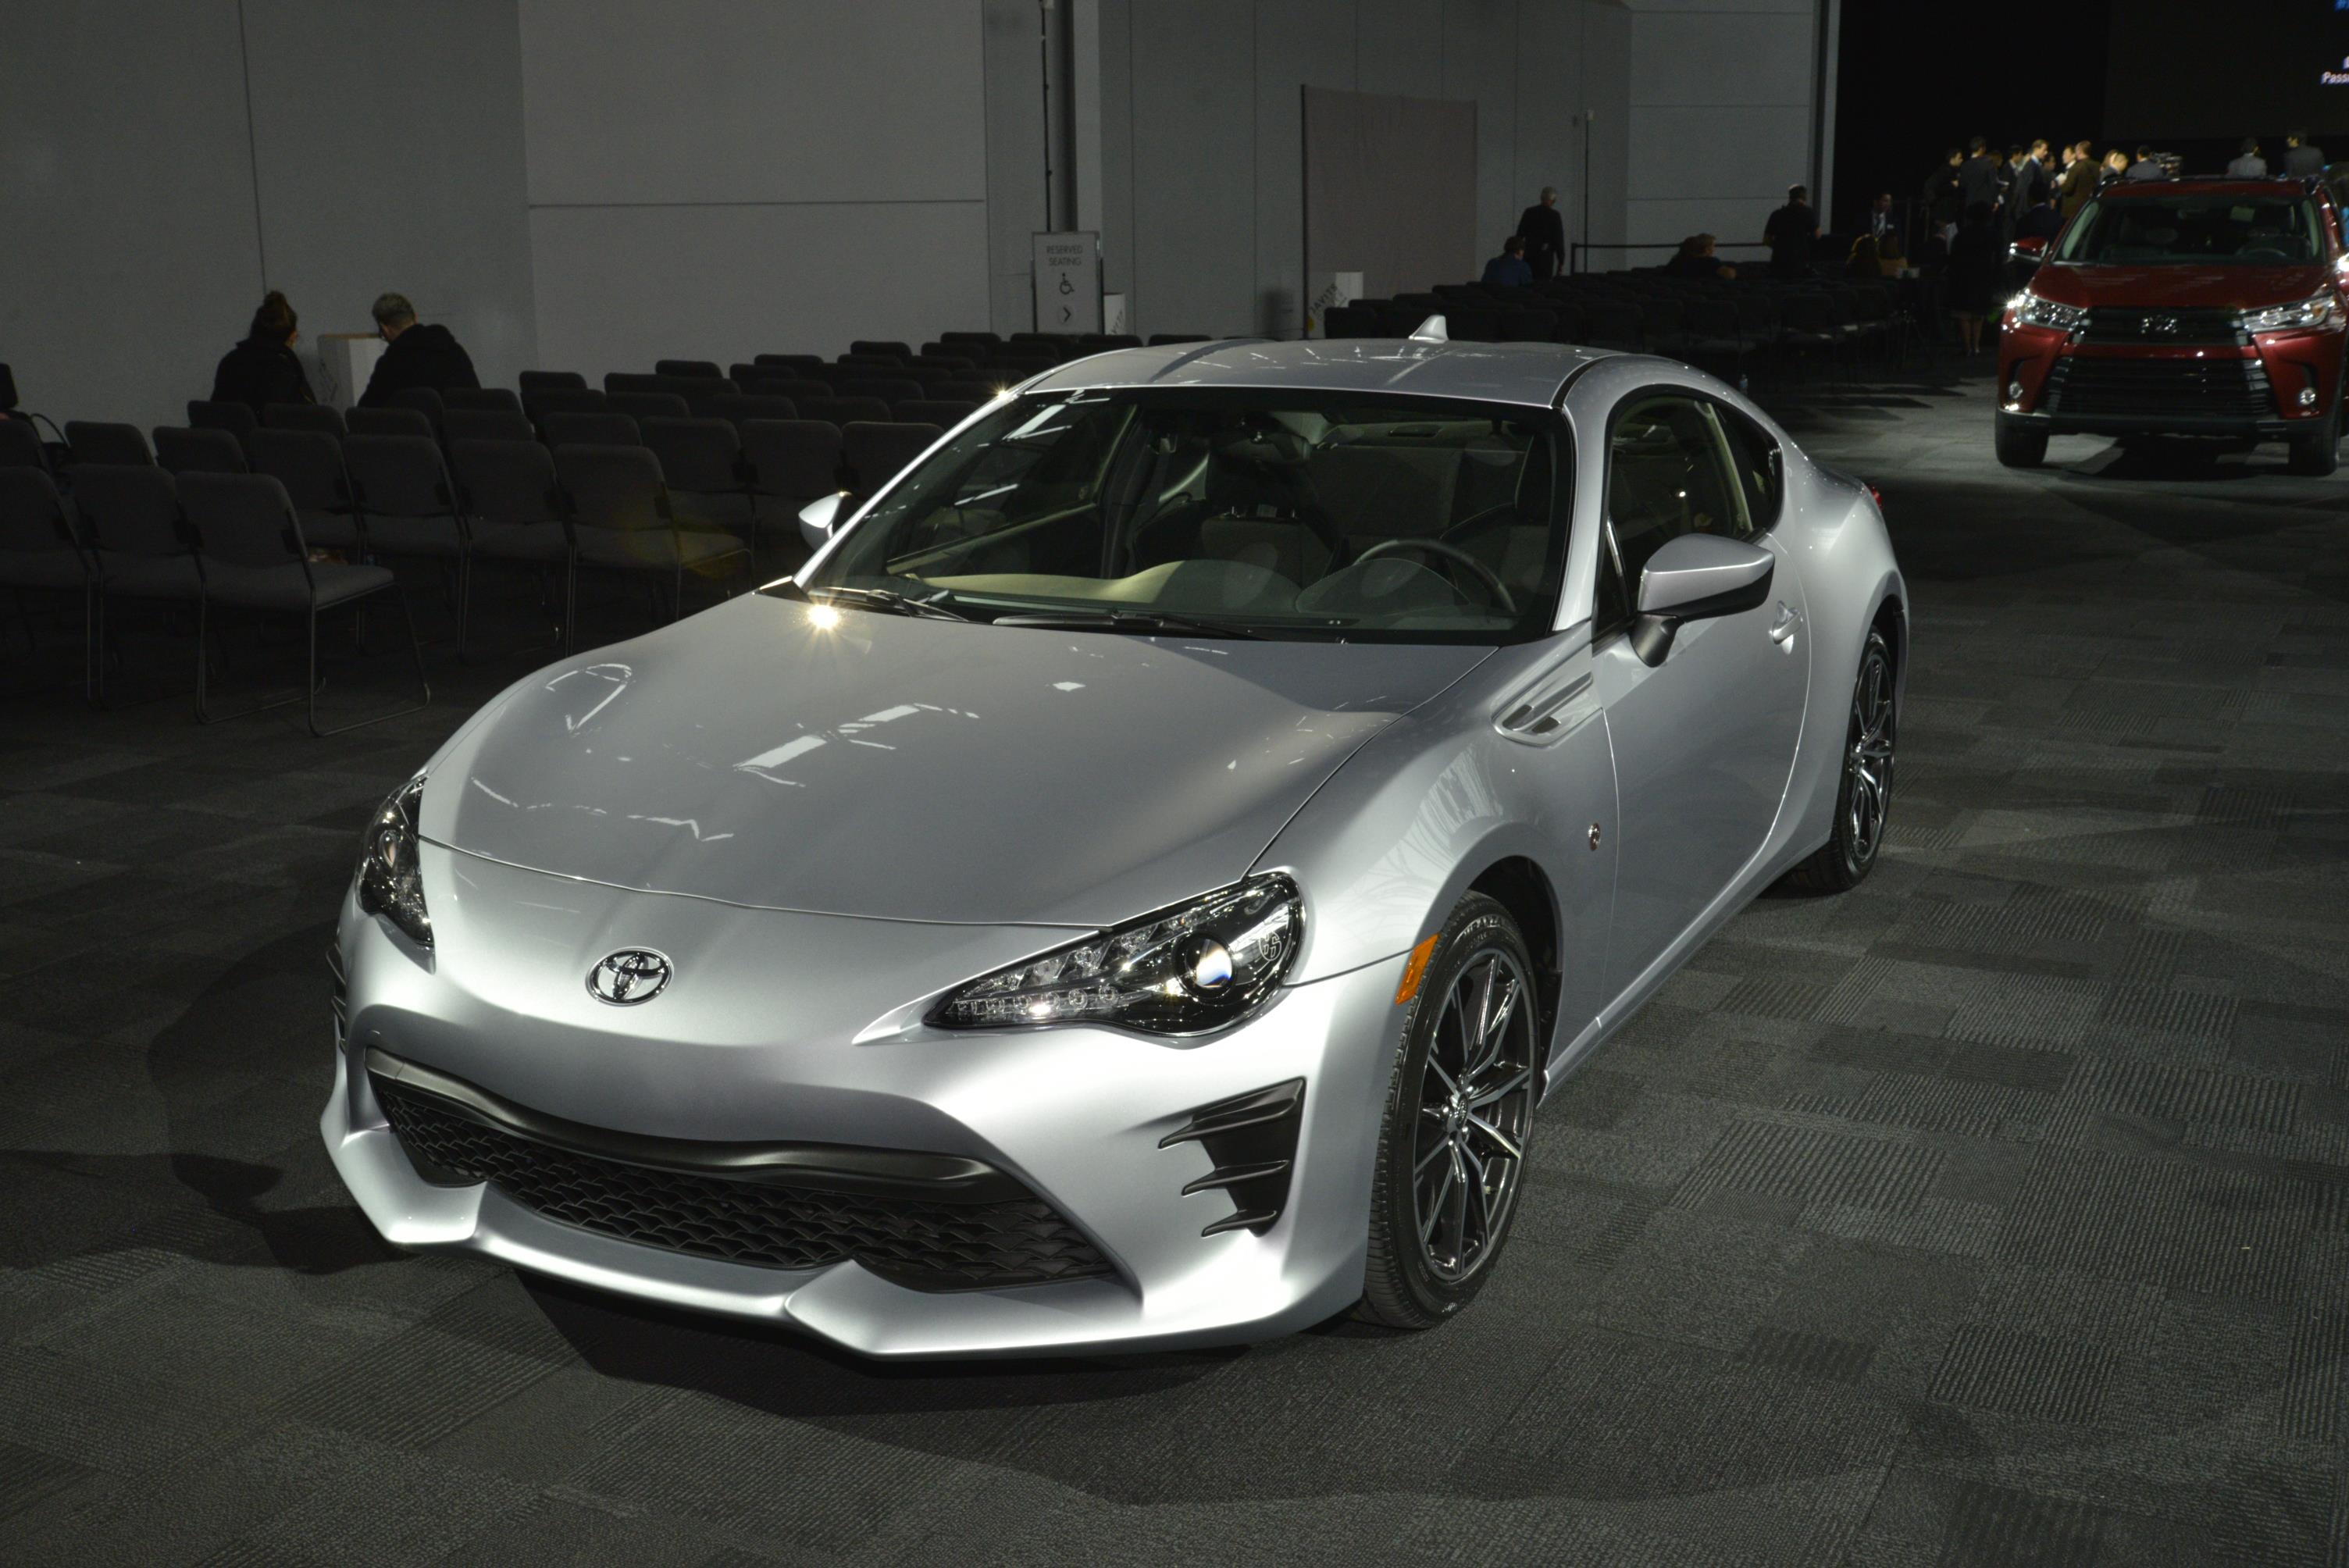 Hd Jdm Car Wallpapers 2017 Toyota 86 Puts An Angry Face On At The New York Auto